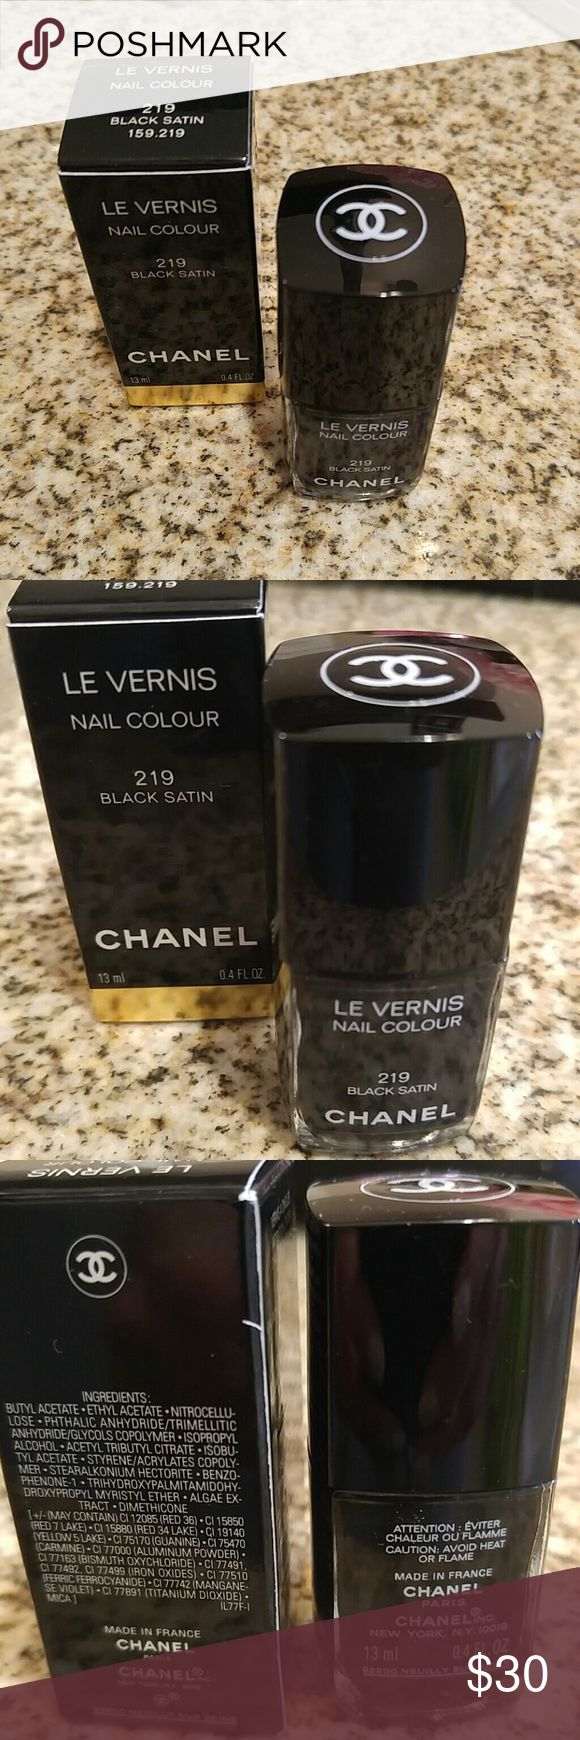 CHANEL NAIL POLISH CHANEL nail polish in BLACK SATIN. a celebrity favorite. Super chic glossy dark nails. A little rebellious and a lot of elegance. CHANEL Makeup